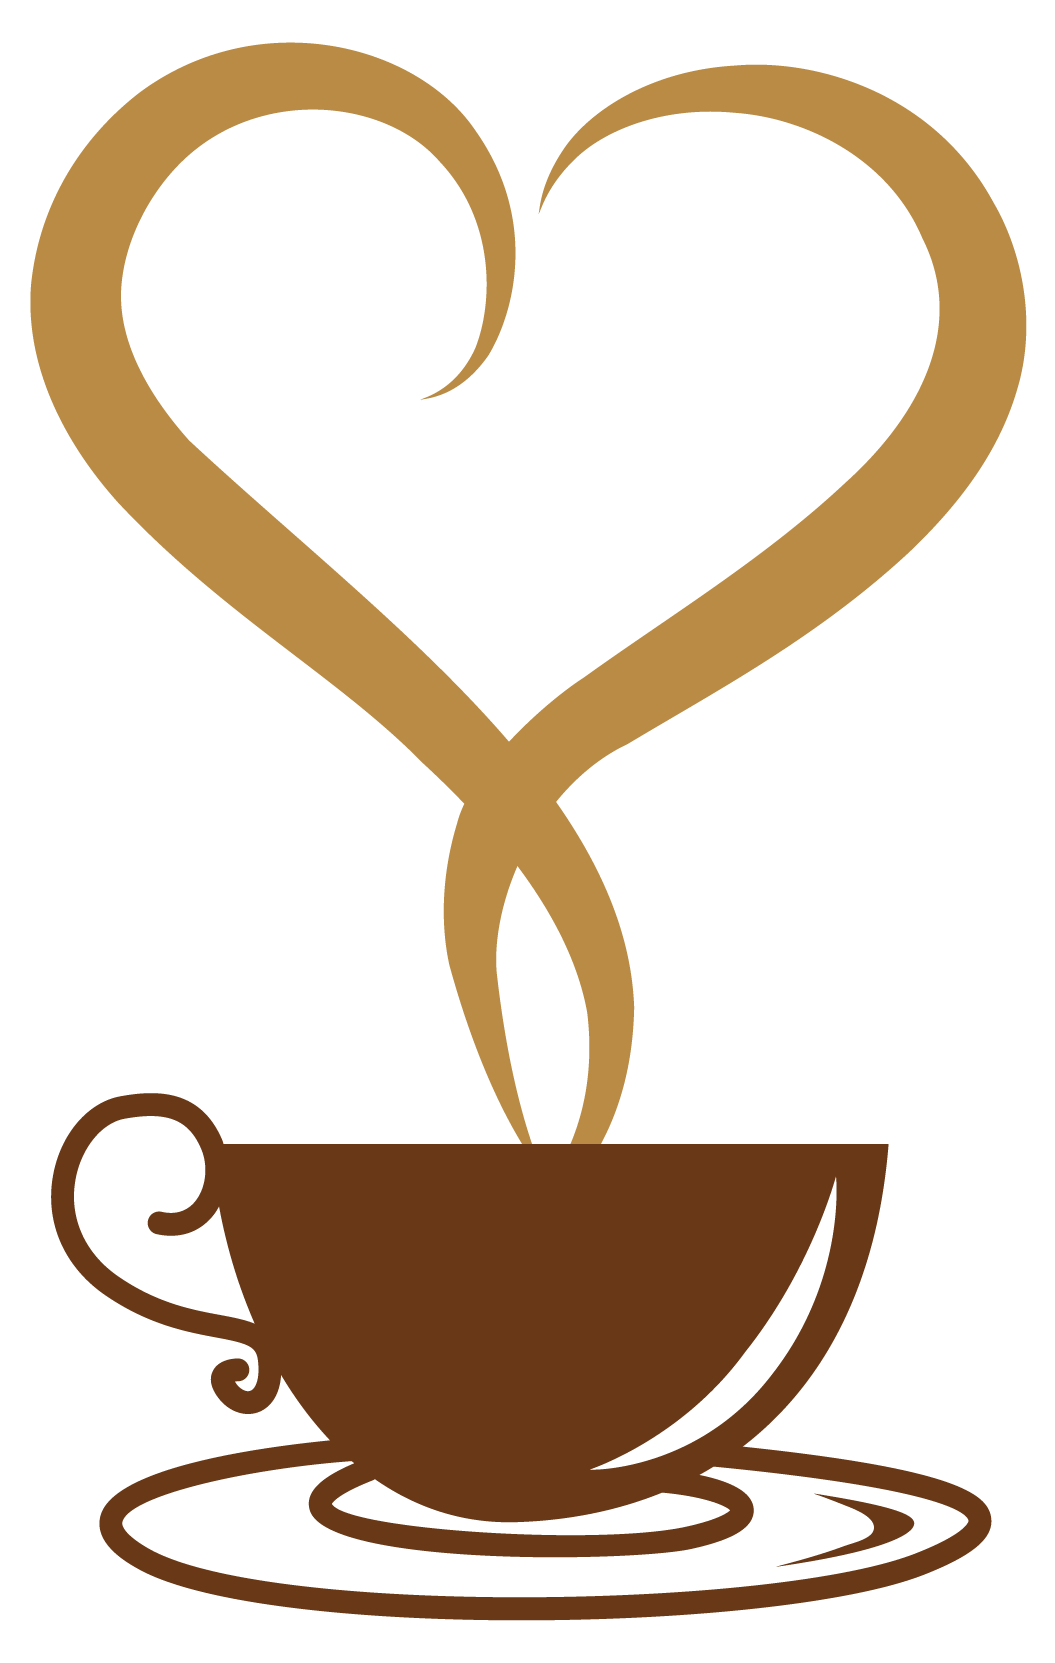 coffee cup starbucks cup clipart top pictures gallery image 14122 [ 1055 x 1663 Pixel ]